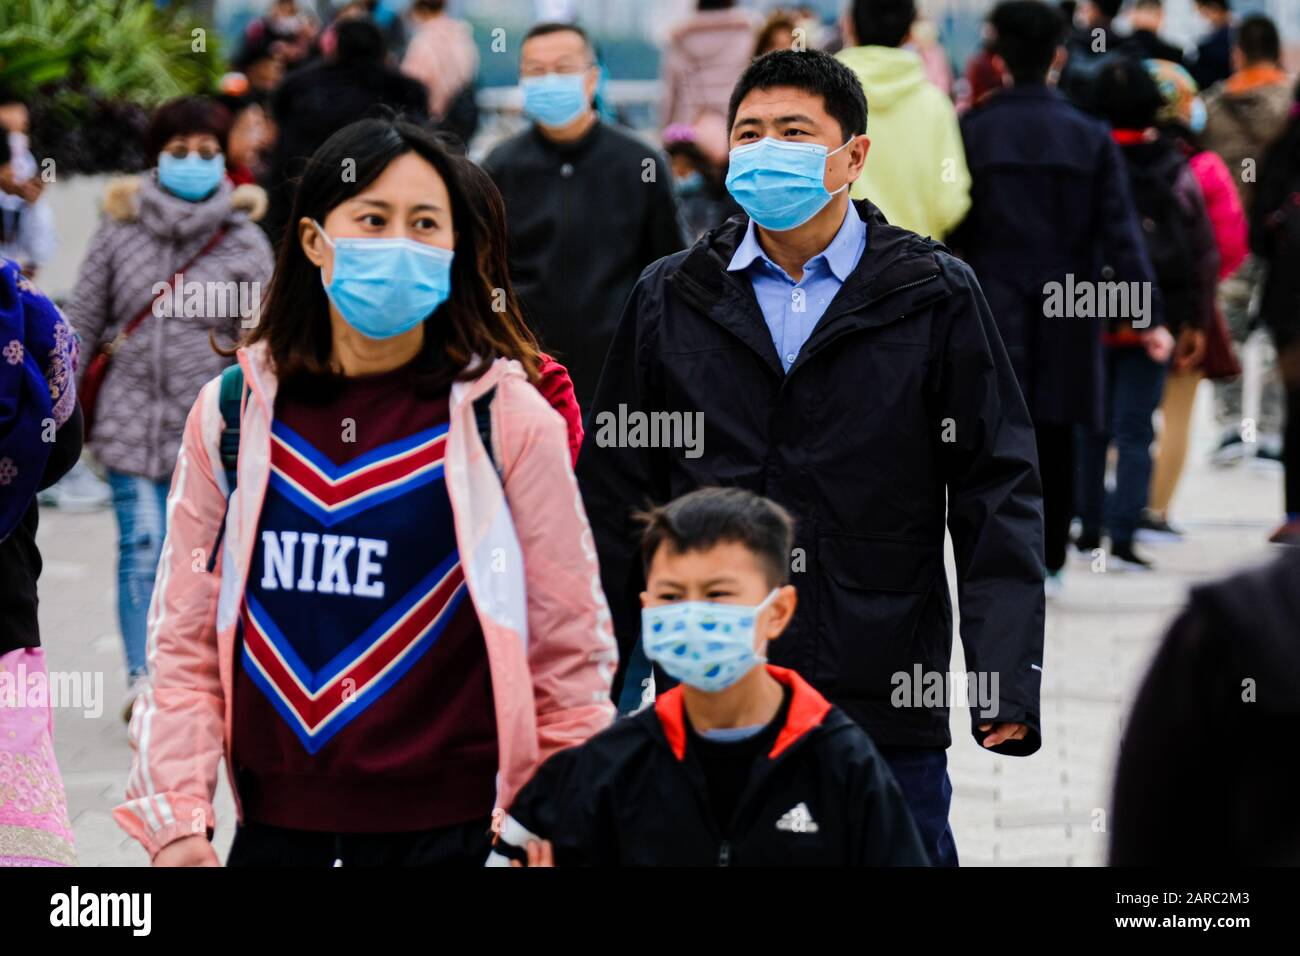 Hong Kong, China. 27th Jan, 2020. Tourists wear surgical mask by Victoria Harbour in Hong Kong. Hong Kong has detected eight Coronavirus cases so far. The number of people killed in China by the coronavirus has risen to 81, with almost 3,000 confirmed ill. According to the World Health Organization and national authorities, there have been at least 44 confirmed cases outside China. Credit: Keith Tsuji/ZUMA Wire/Alamy Live News Stock Photo